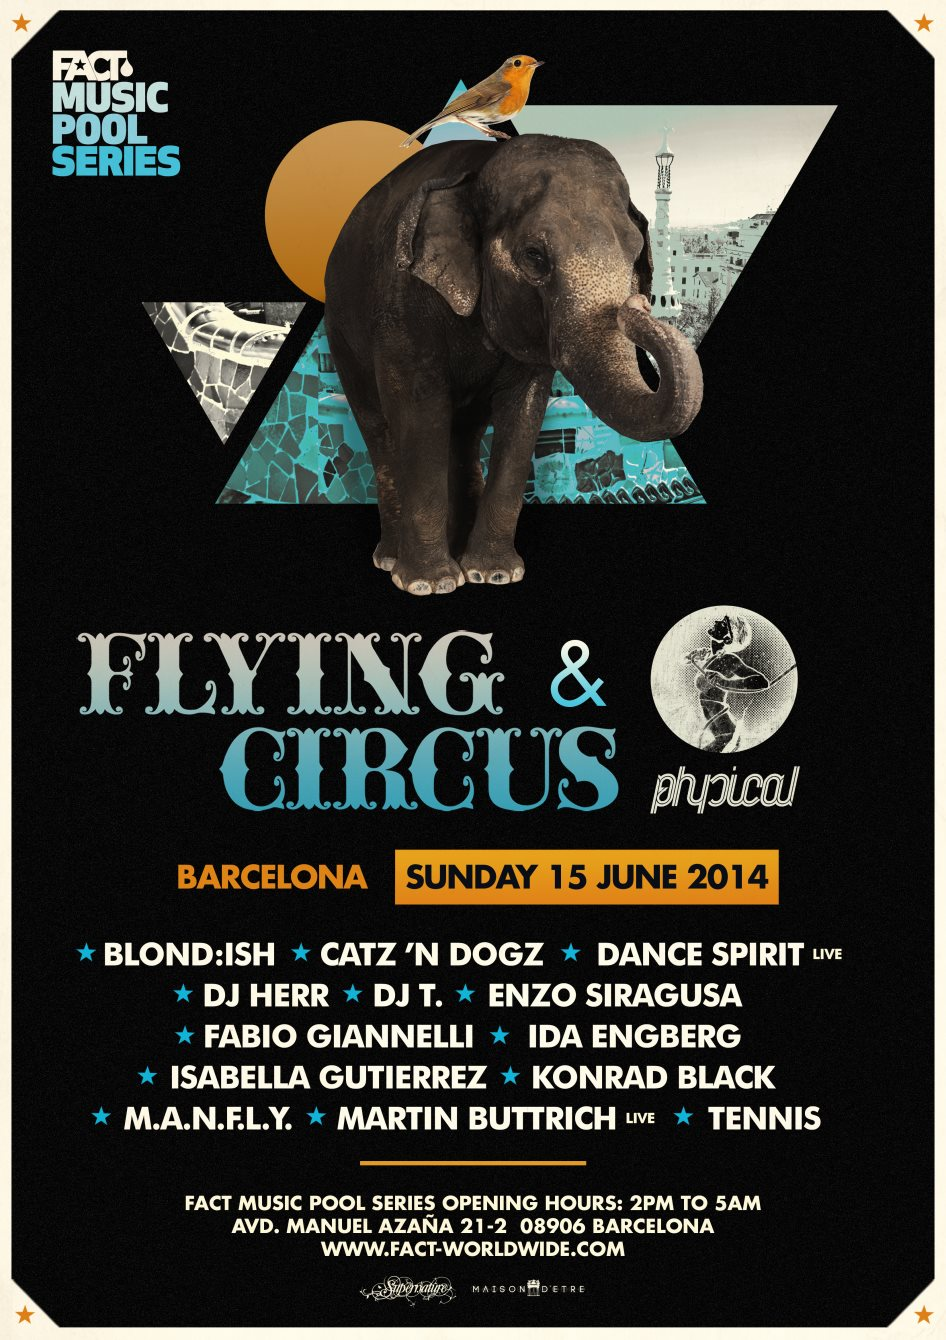 download → Martin Buttrich (live) - Get Physical & Flying Circus, FACT Music Pool Series (OFF Sonar Week 2014, BCN) - 15-Jun-2014